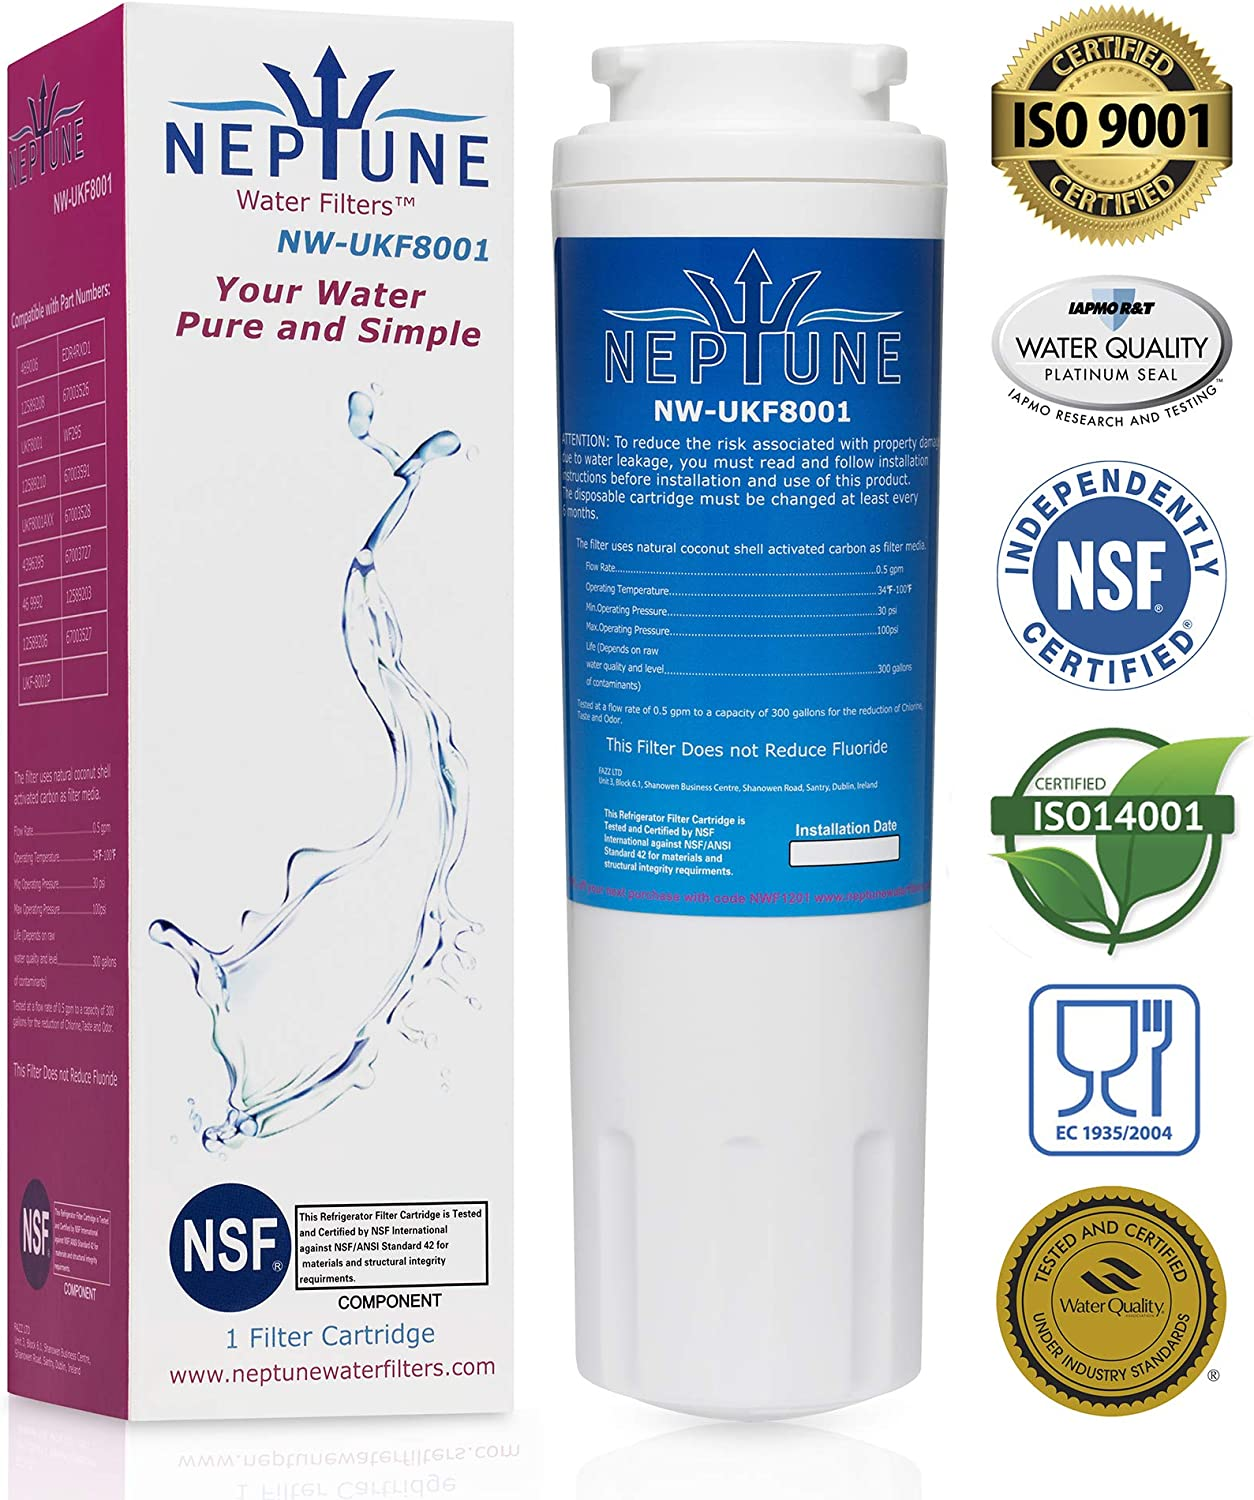 Neptune Water Filters Replacement for Refrigerator Water Filter (1)